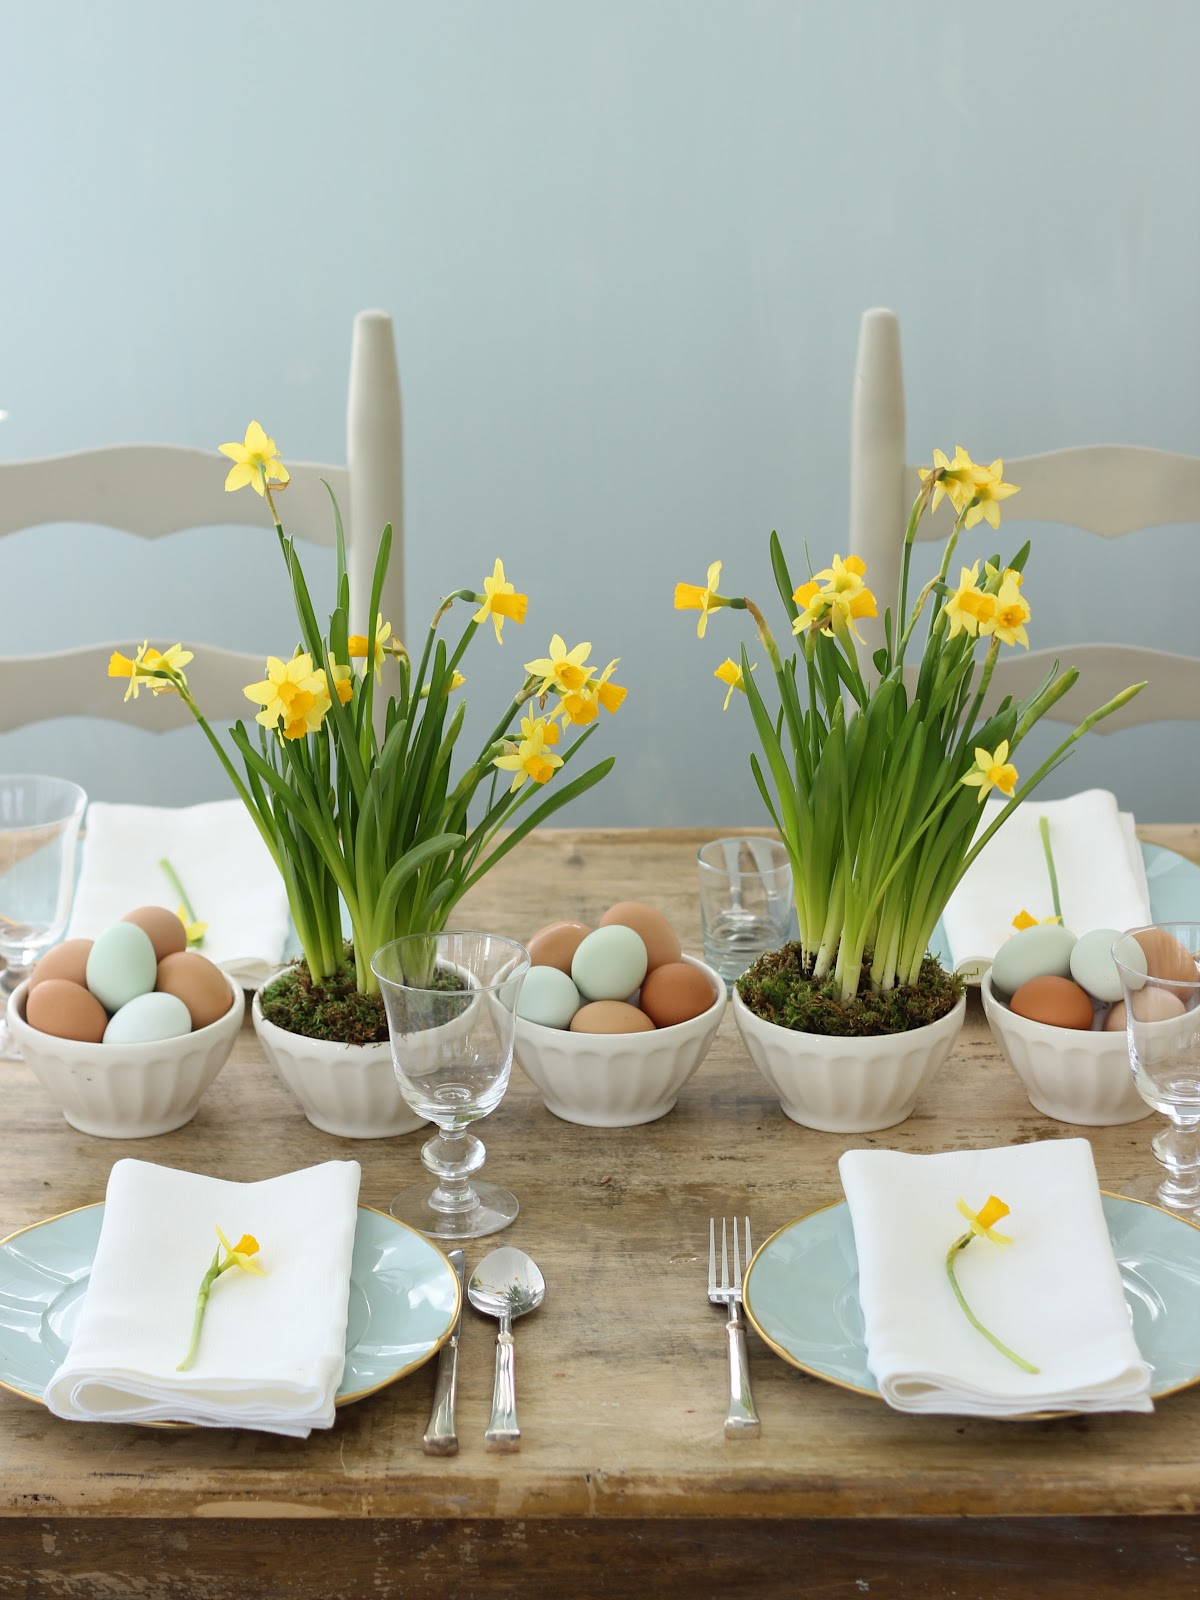 Jenny steffens hobick spring easter centerpieces Images for easter decorations